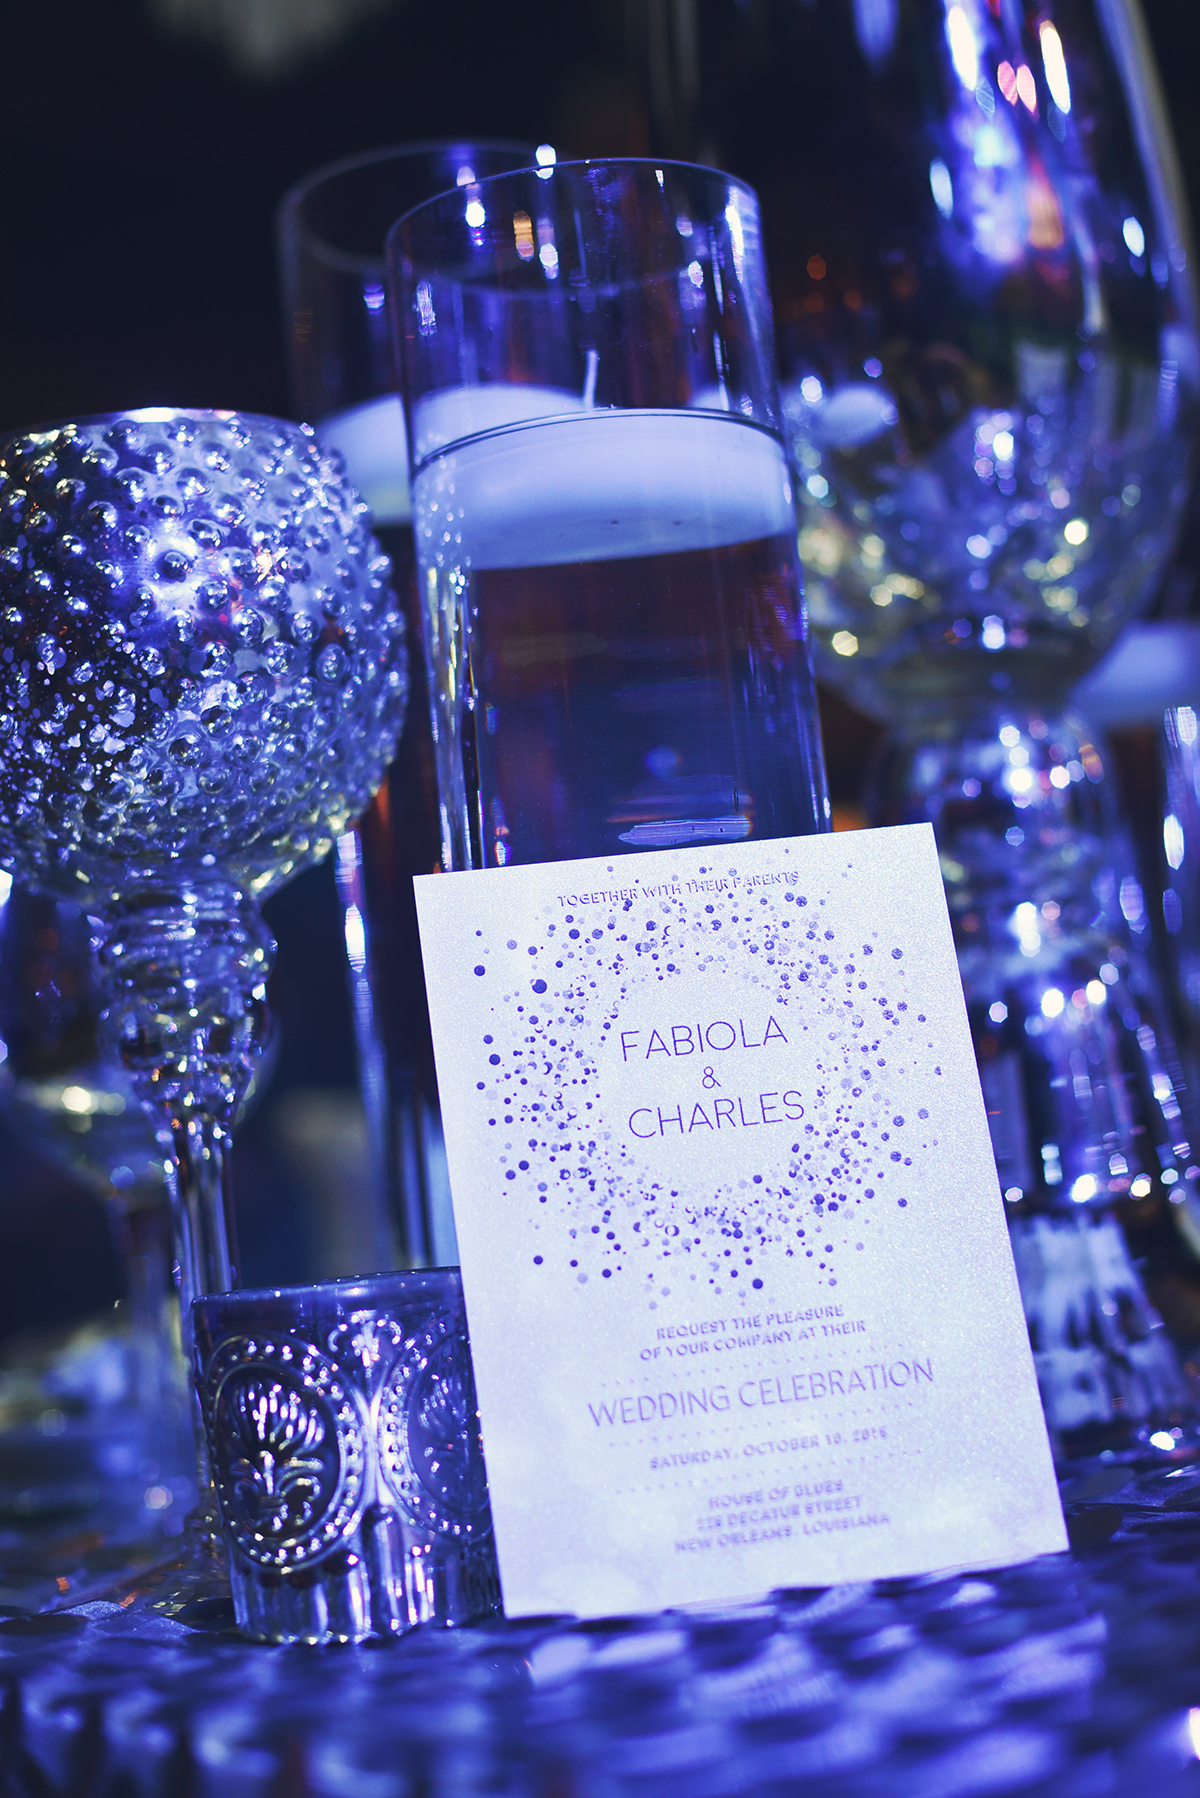 These invitations with a glitter theme set the tone for the event perfectly.